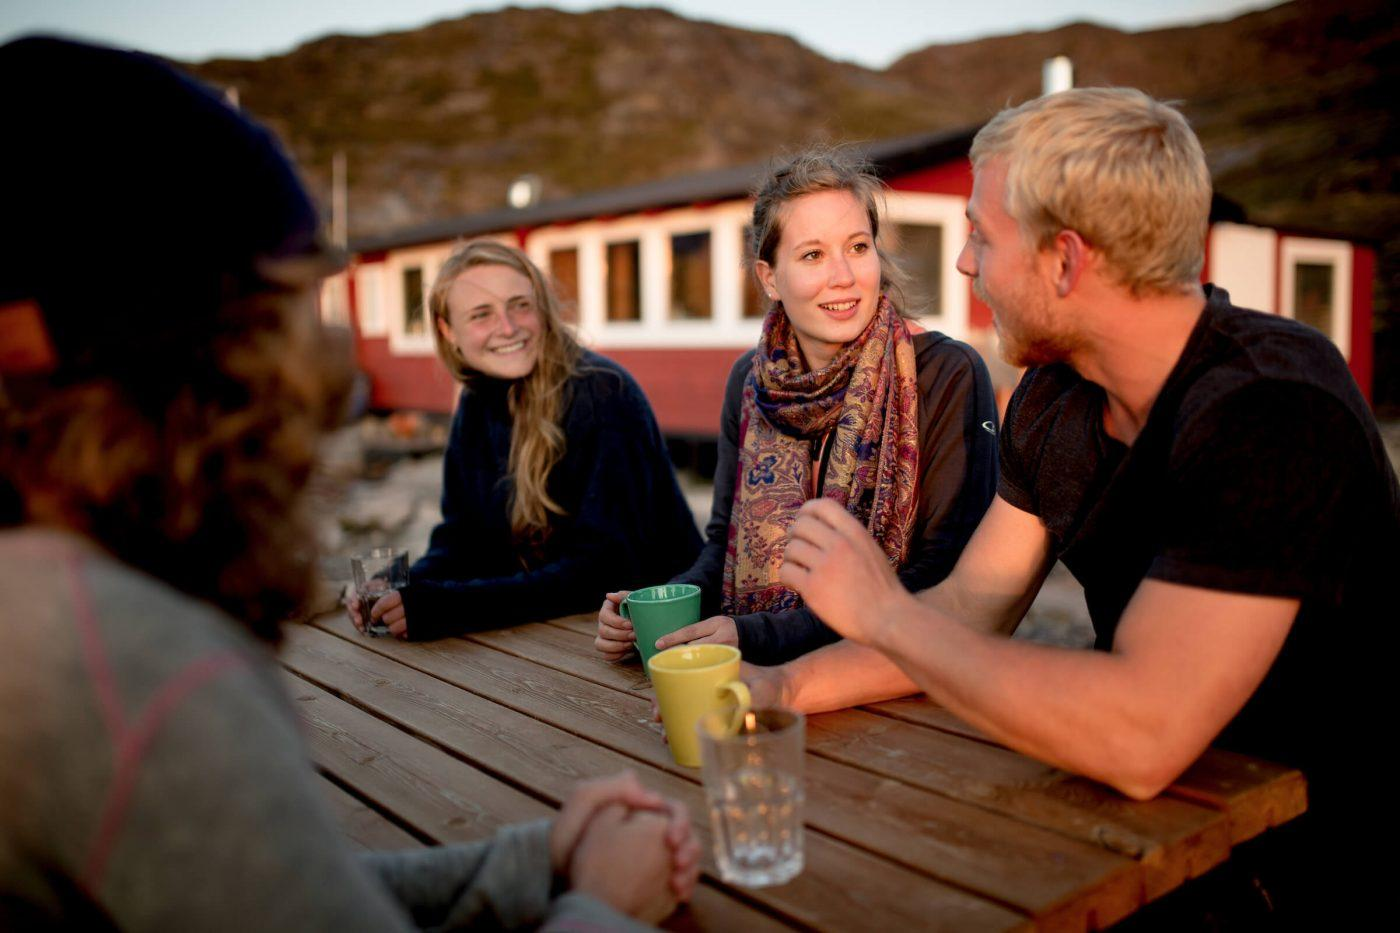 Guests in the sunset at Eqi Glacier Lodge in Greenland. Photo by Mads Pihl